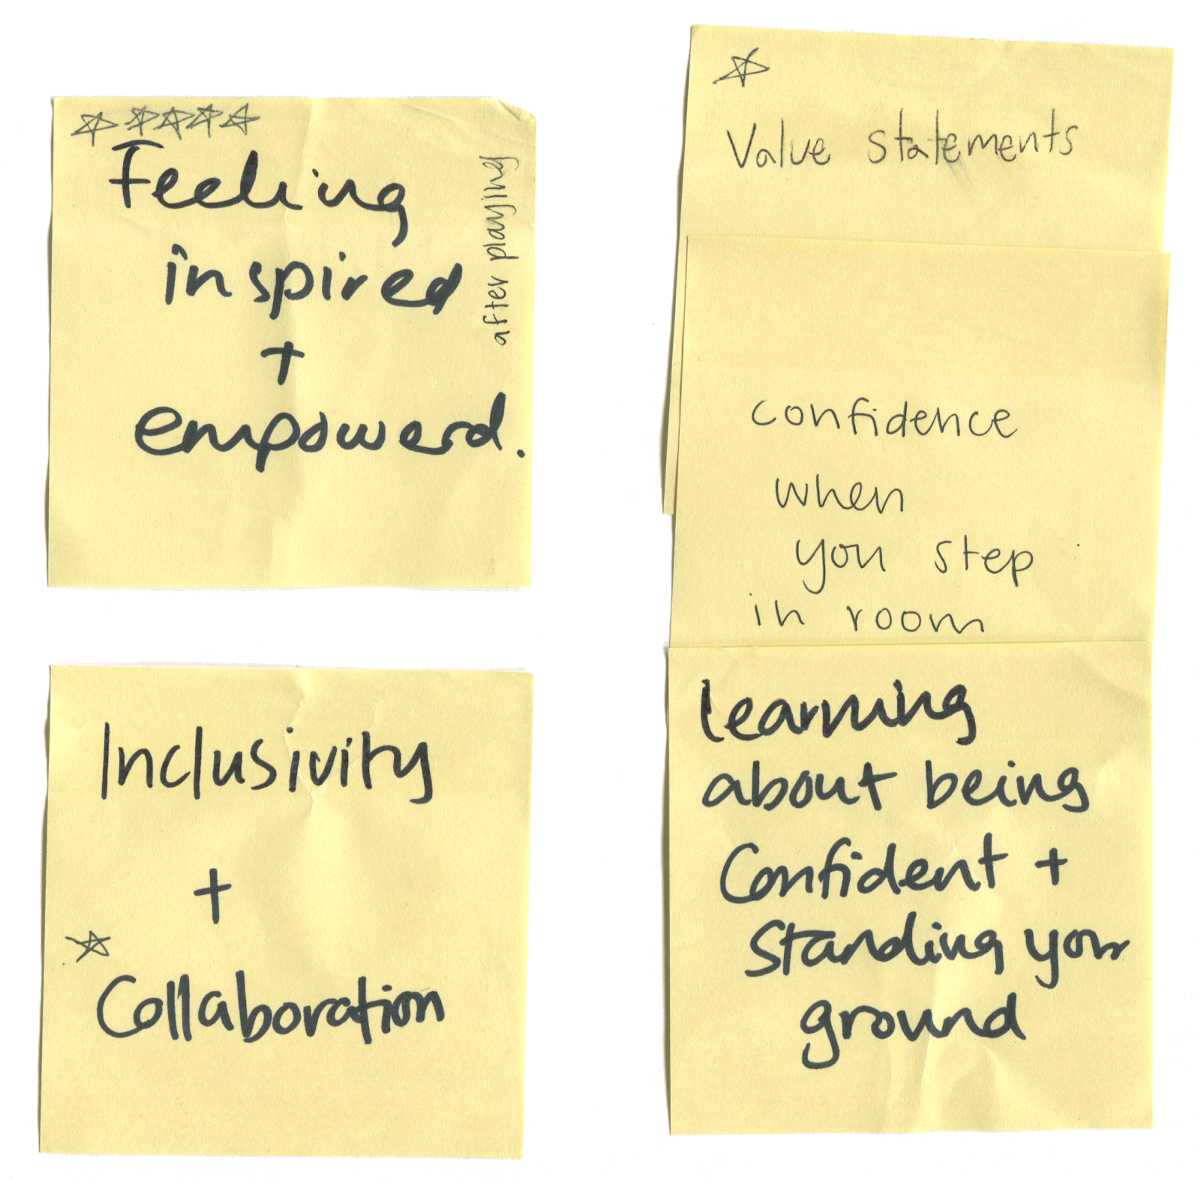 Four post it notes that say 'Feeling inspired and empowered', 'inclusivity and collaboration', 'value statements', and 'learning about being confident and standing your ground'.